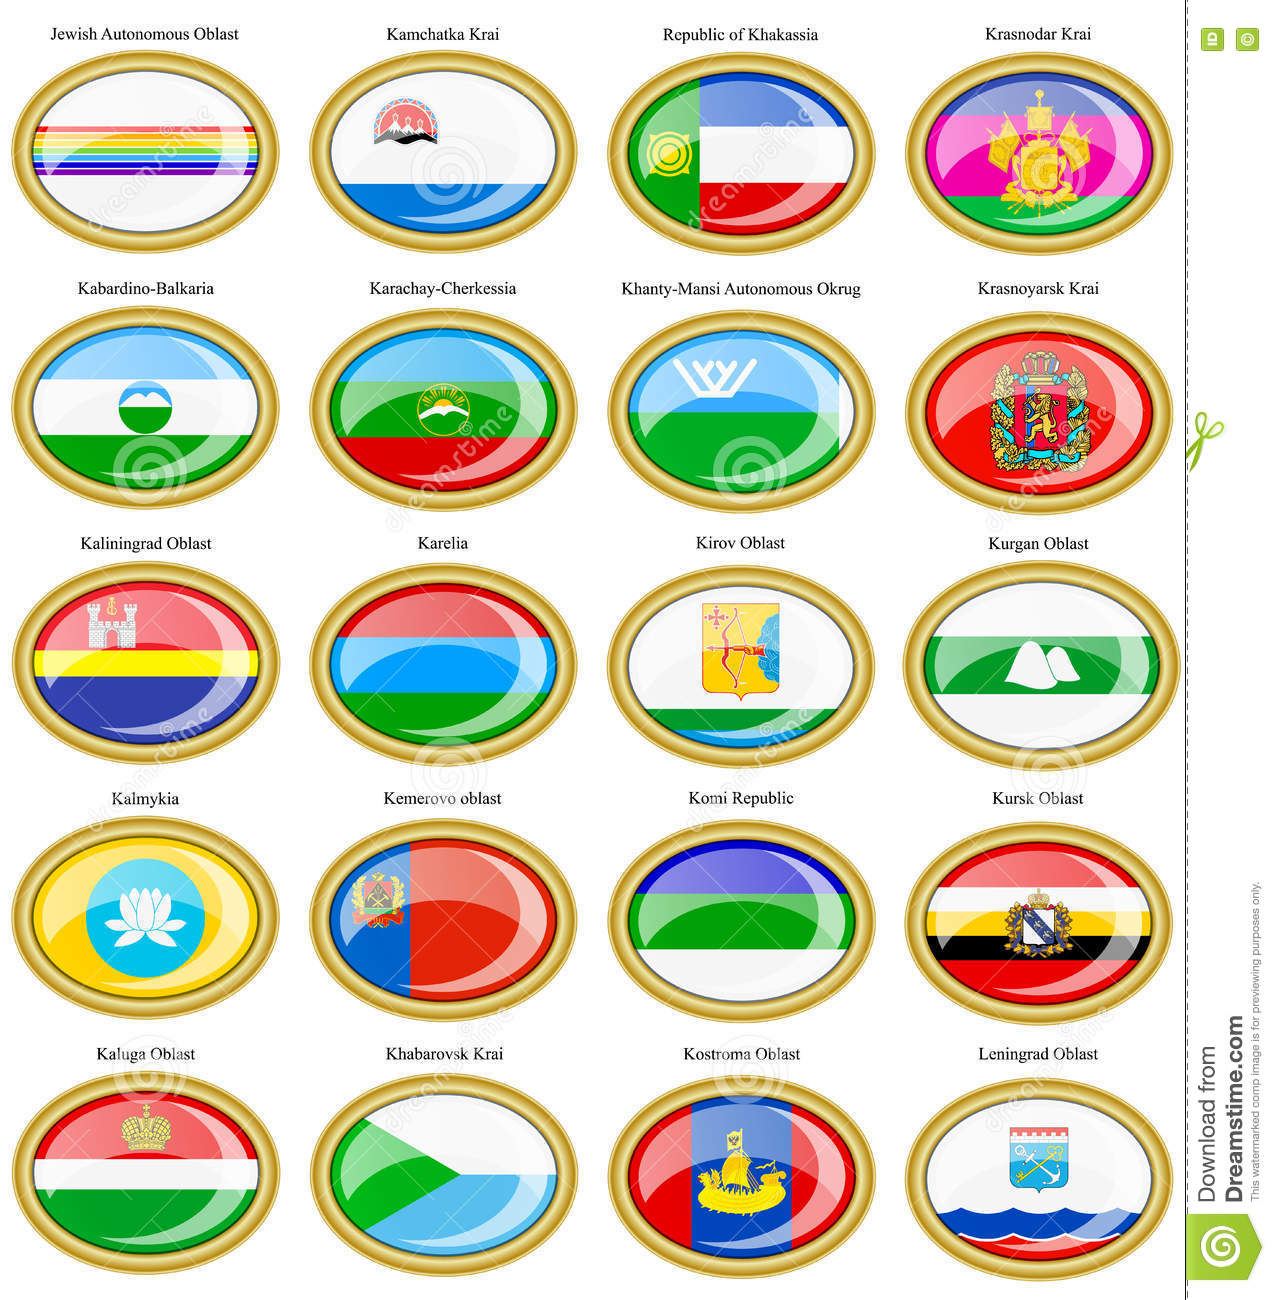 Subjects of russian federation with